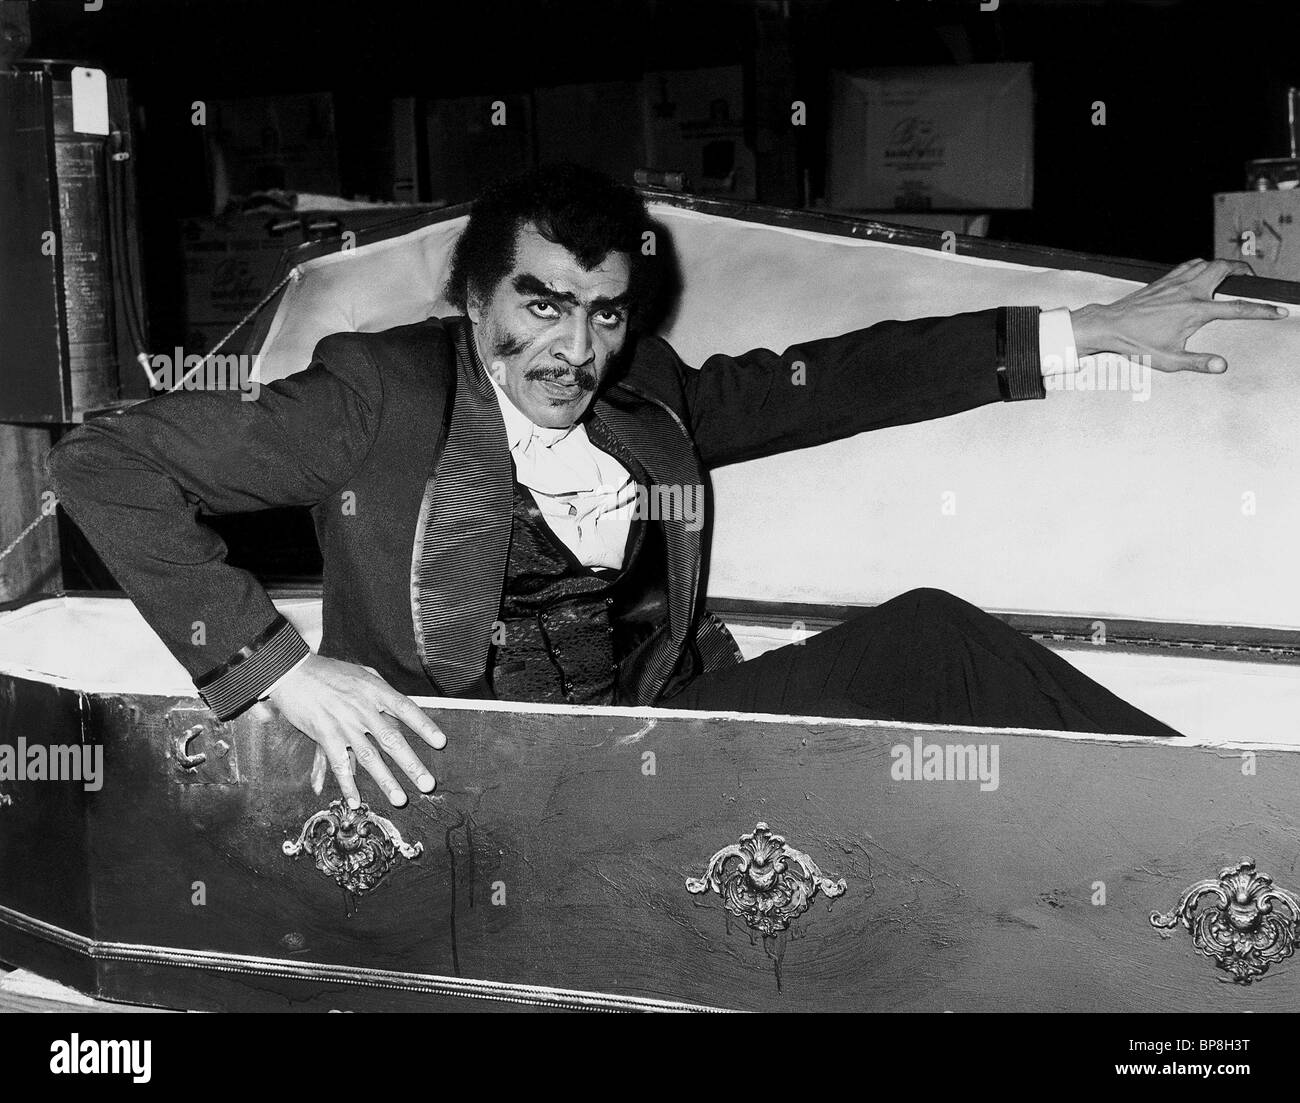 WILLIAM MARSHALL BLACULA (1972) - Stock Image